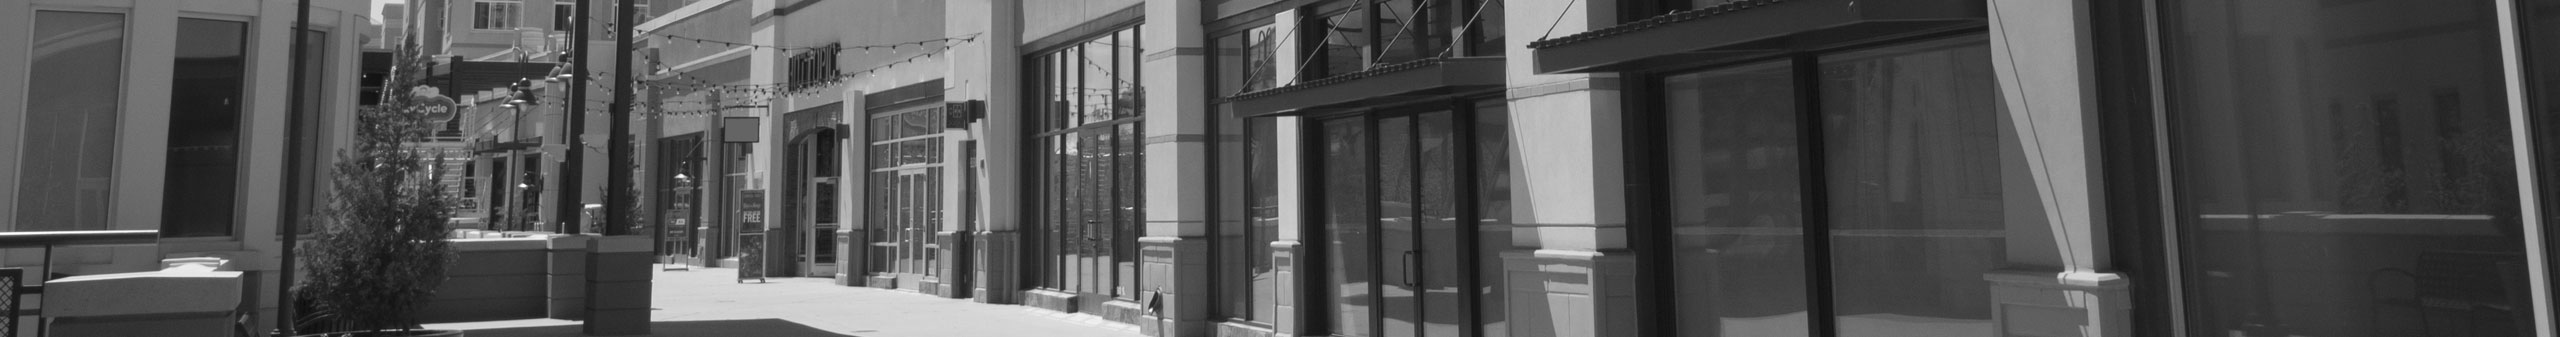 Retail_headerphoto